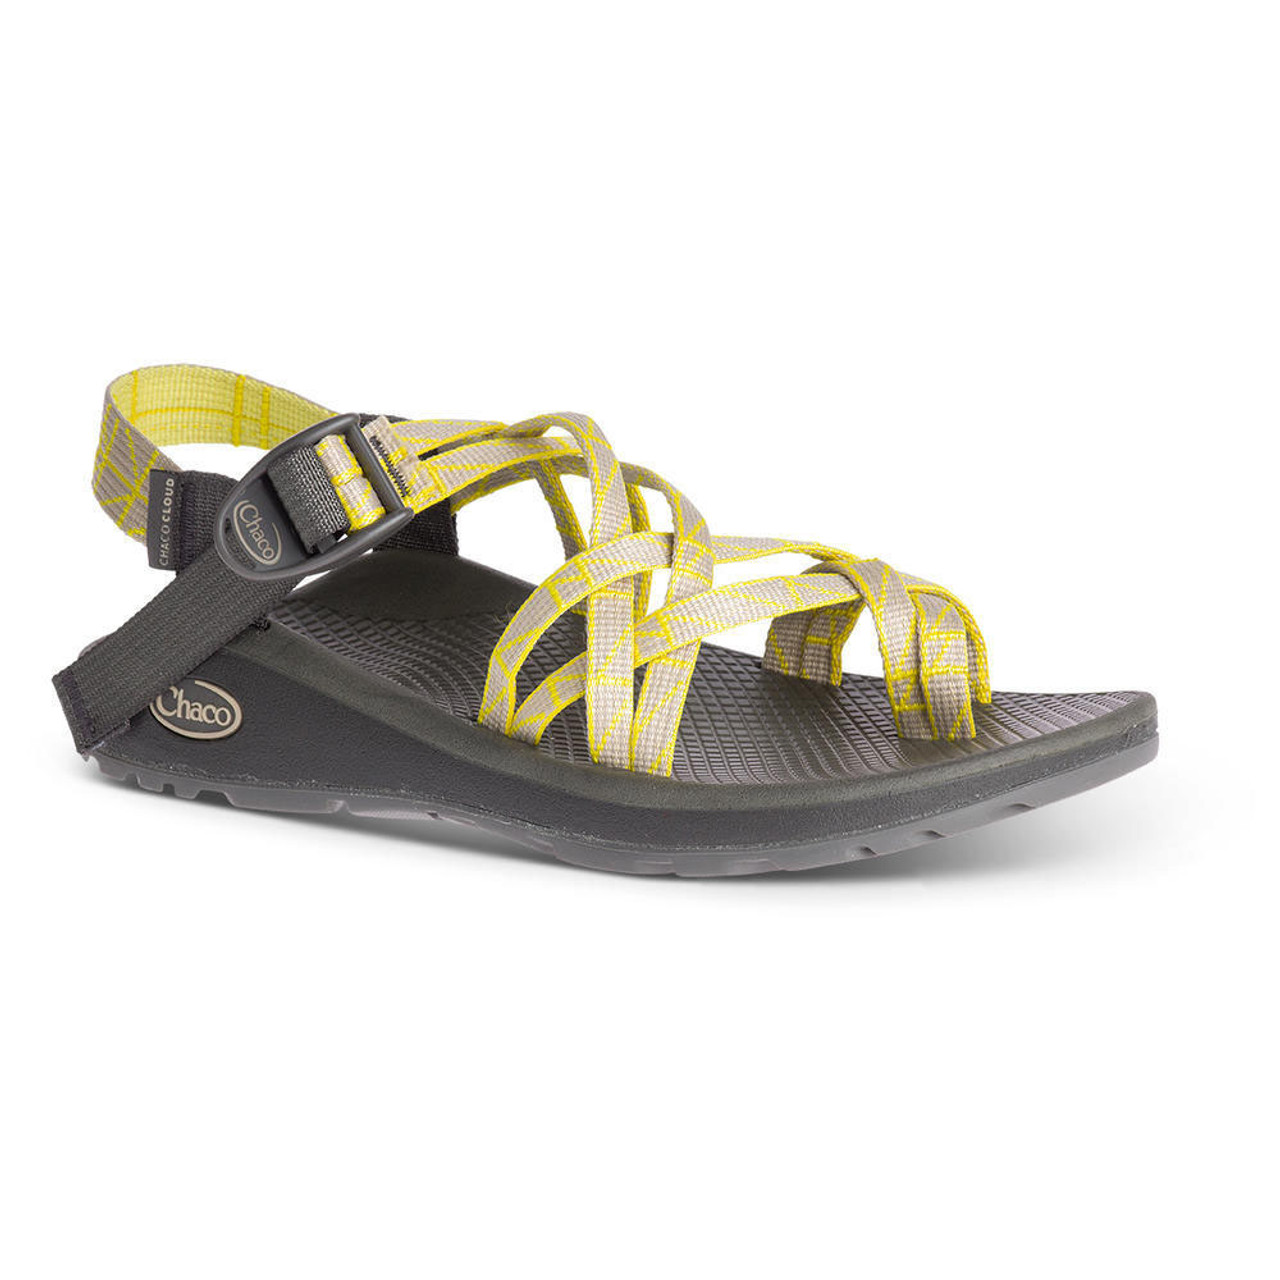 1b7c3ce9c05c Chaco Women s Sandal - Z Cloud X2 - Prime Yellow - Surf and Dirt